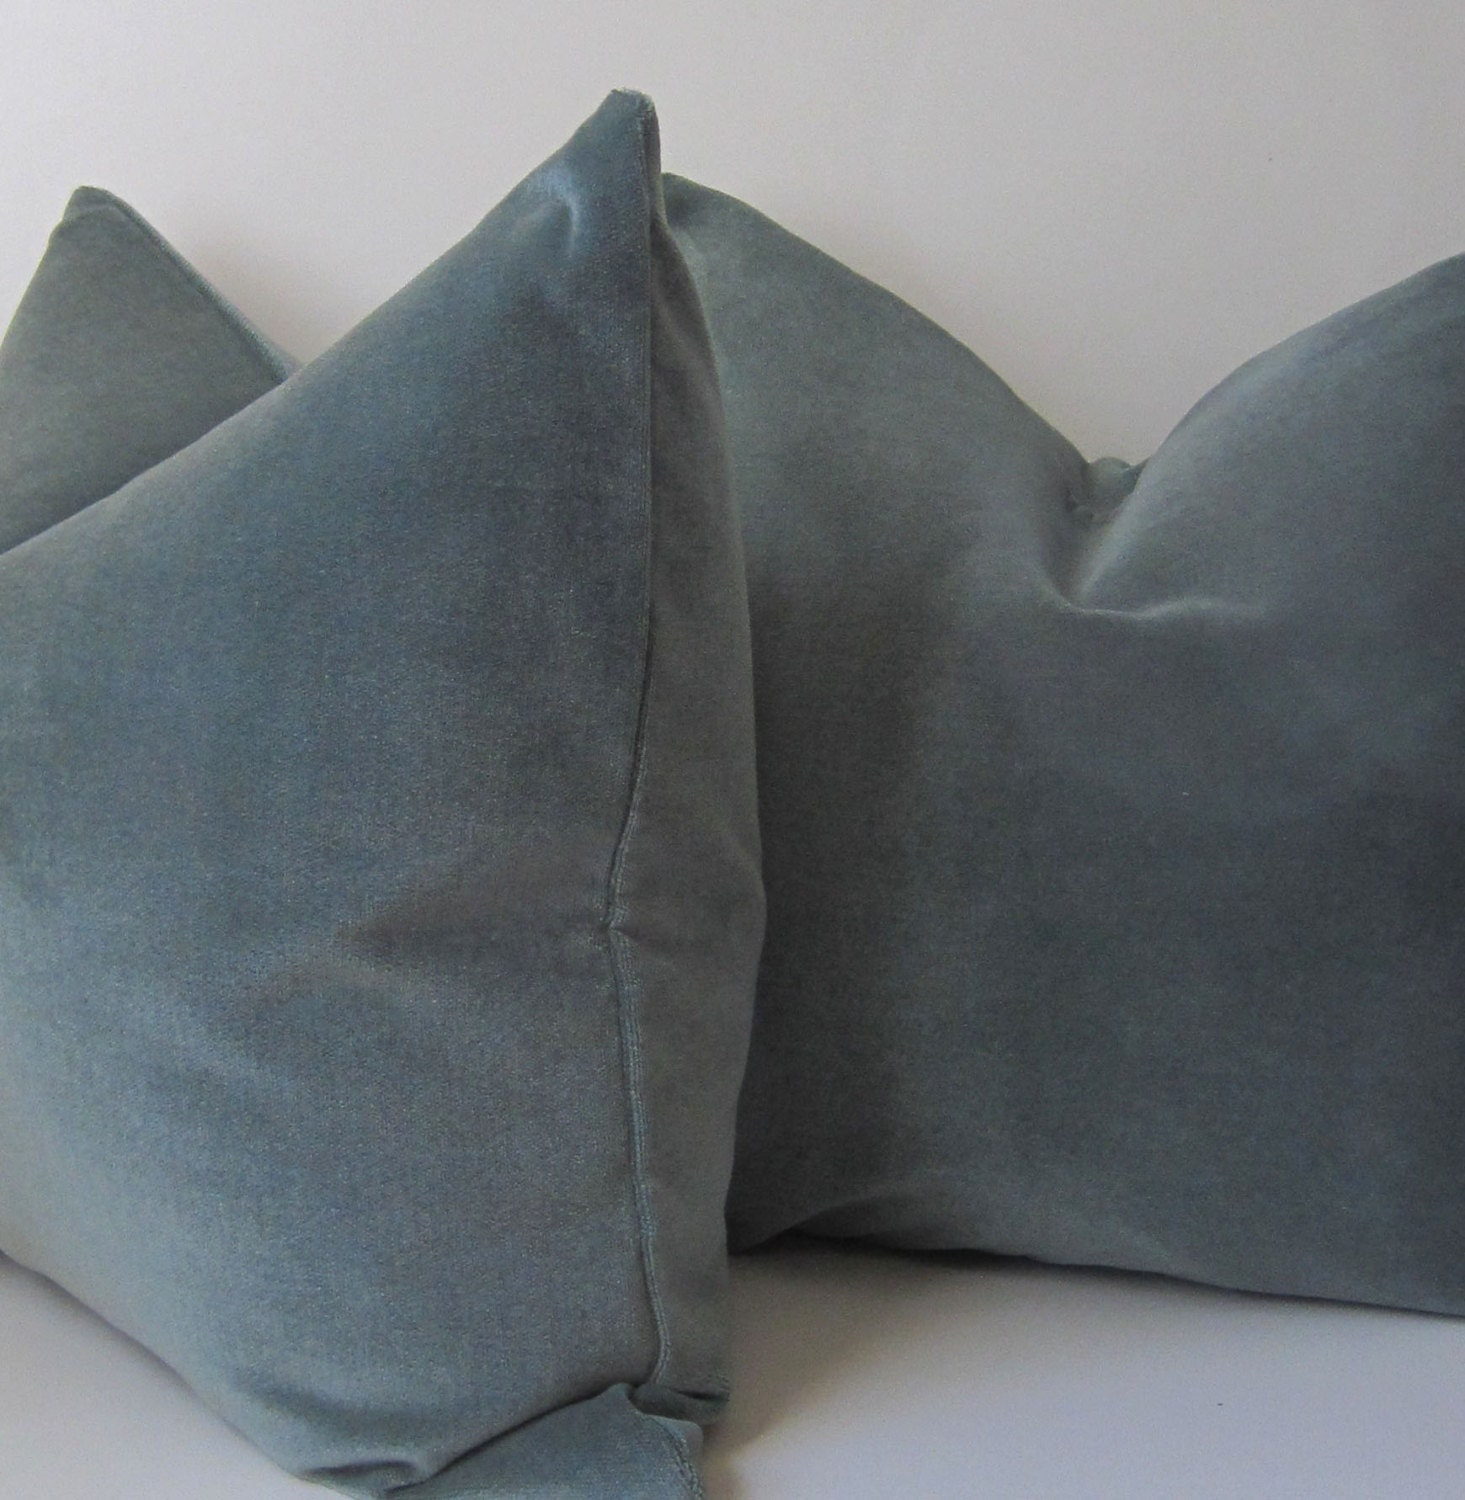 Blue Velvet Throw Pillows : Set of Two Ocean Blue Velvet Pillows Decorative Pillow